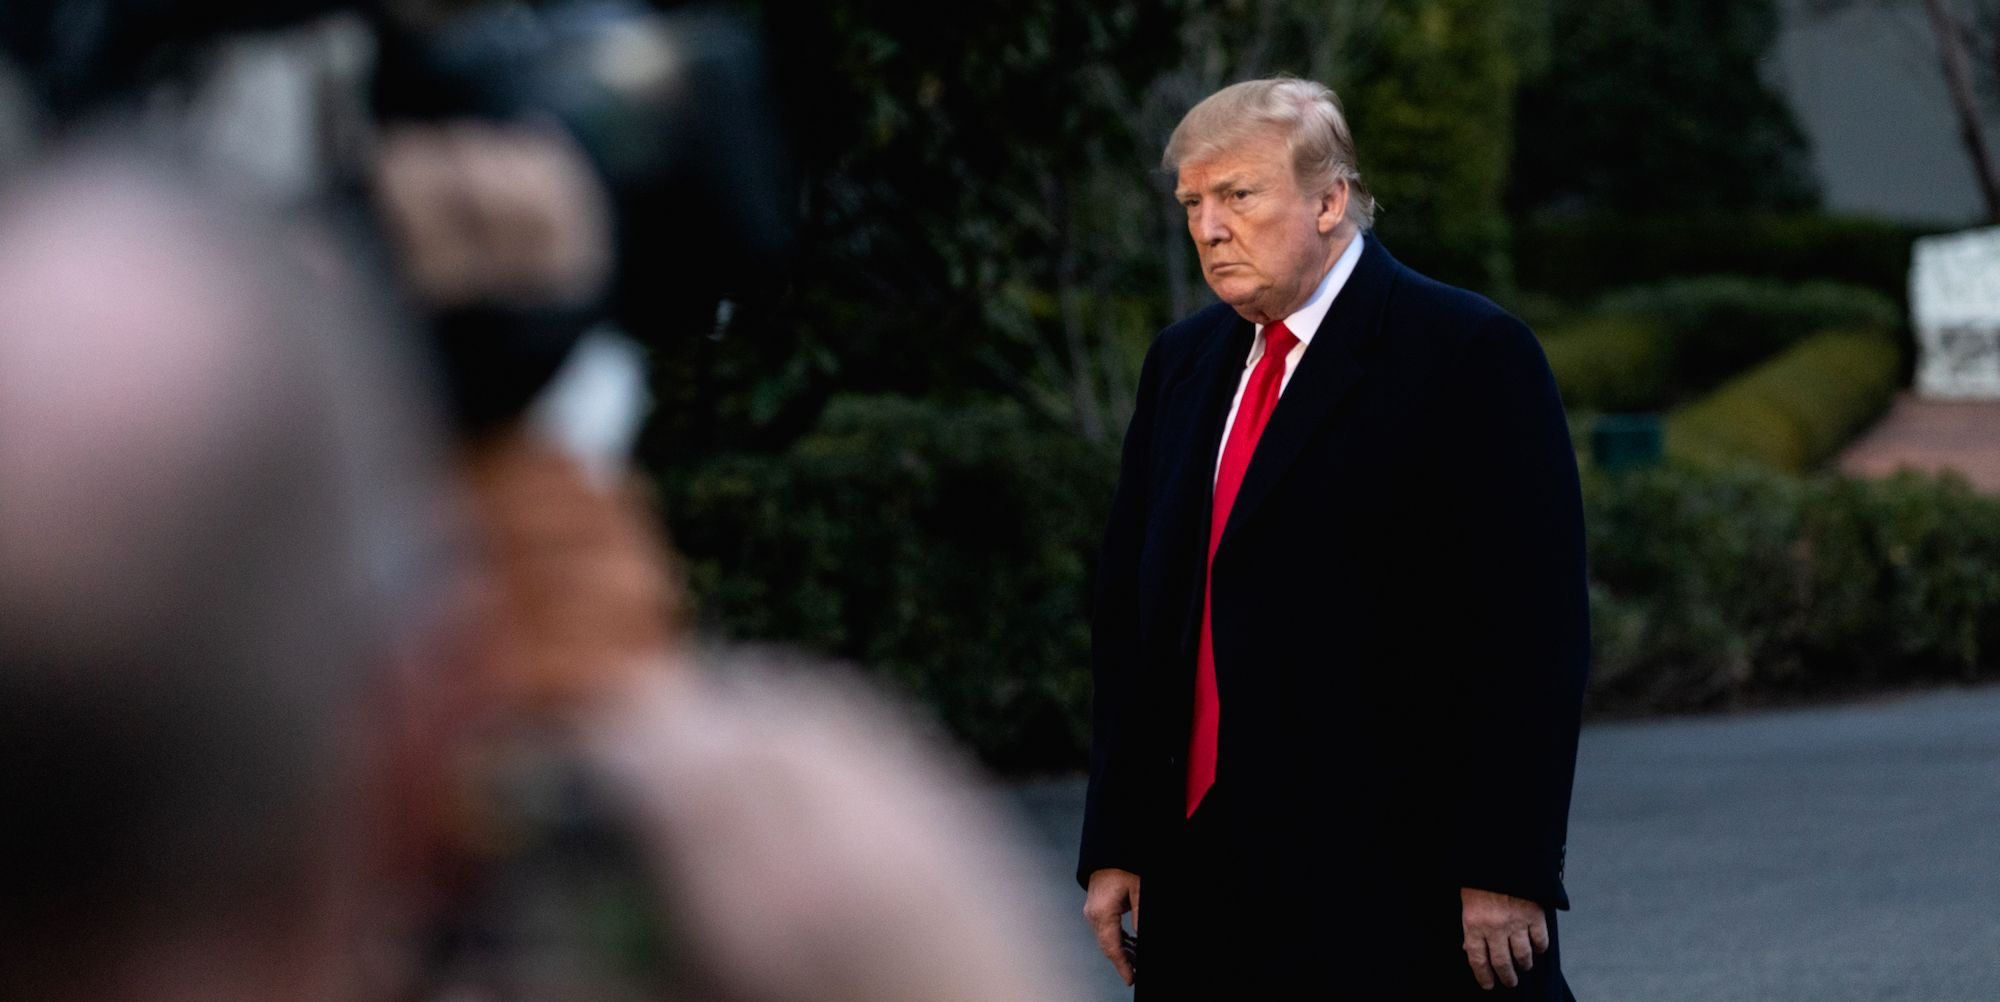 President Trump Returns To White House From Florida After Release Of AG Barr's Letter